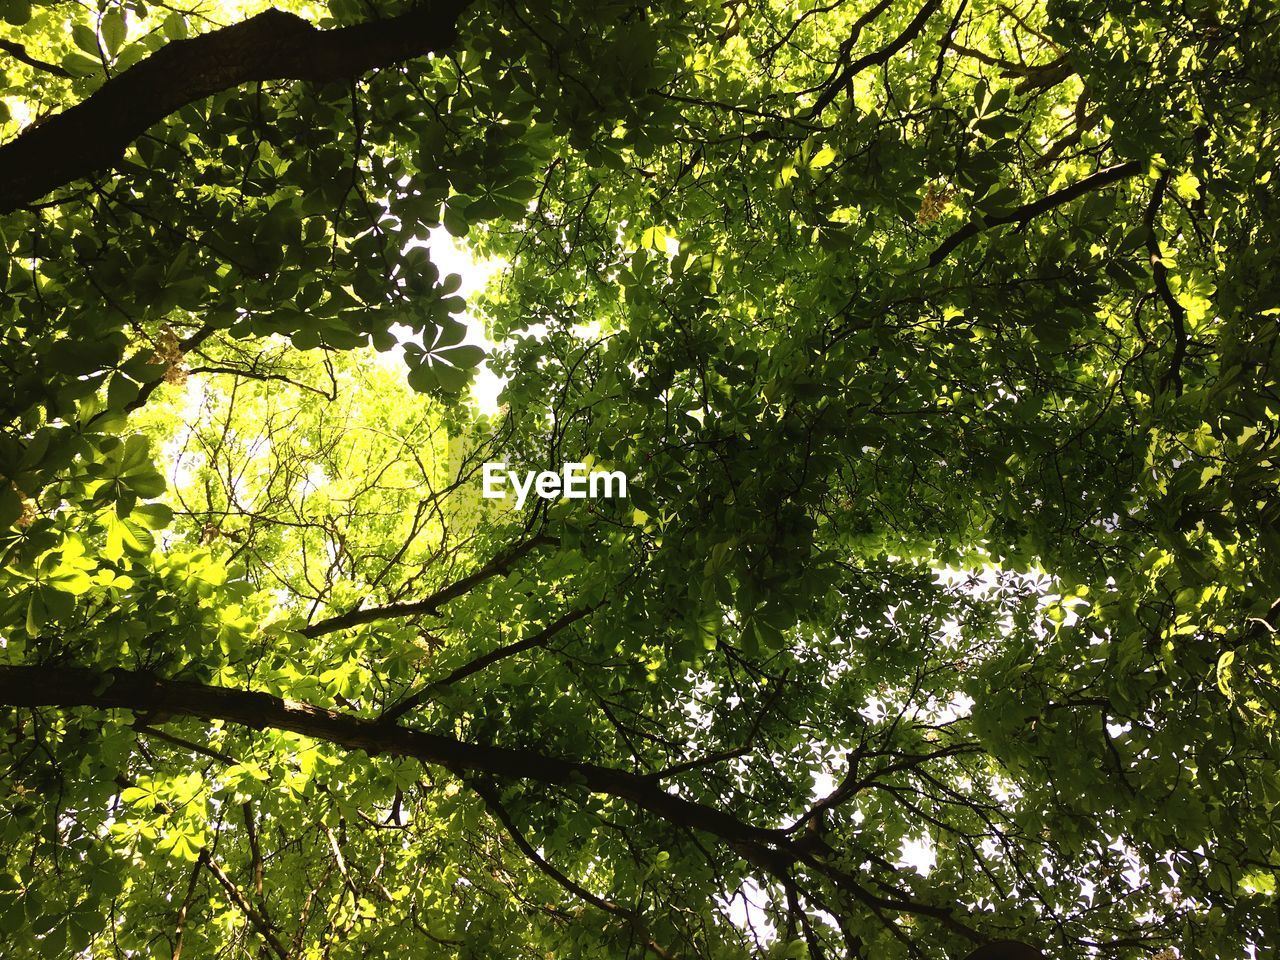 tree, plant, growth, branch, beauty in nature, low angle view, nature, green color, sunlight, day, no people, leaf, plant part, tranquility, outdoors, forest, sky, backgrounds, full frame, tree canopy, directly below